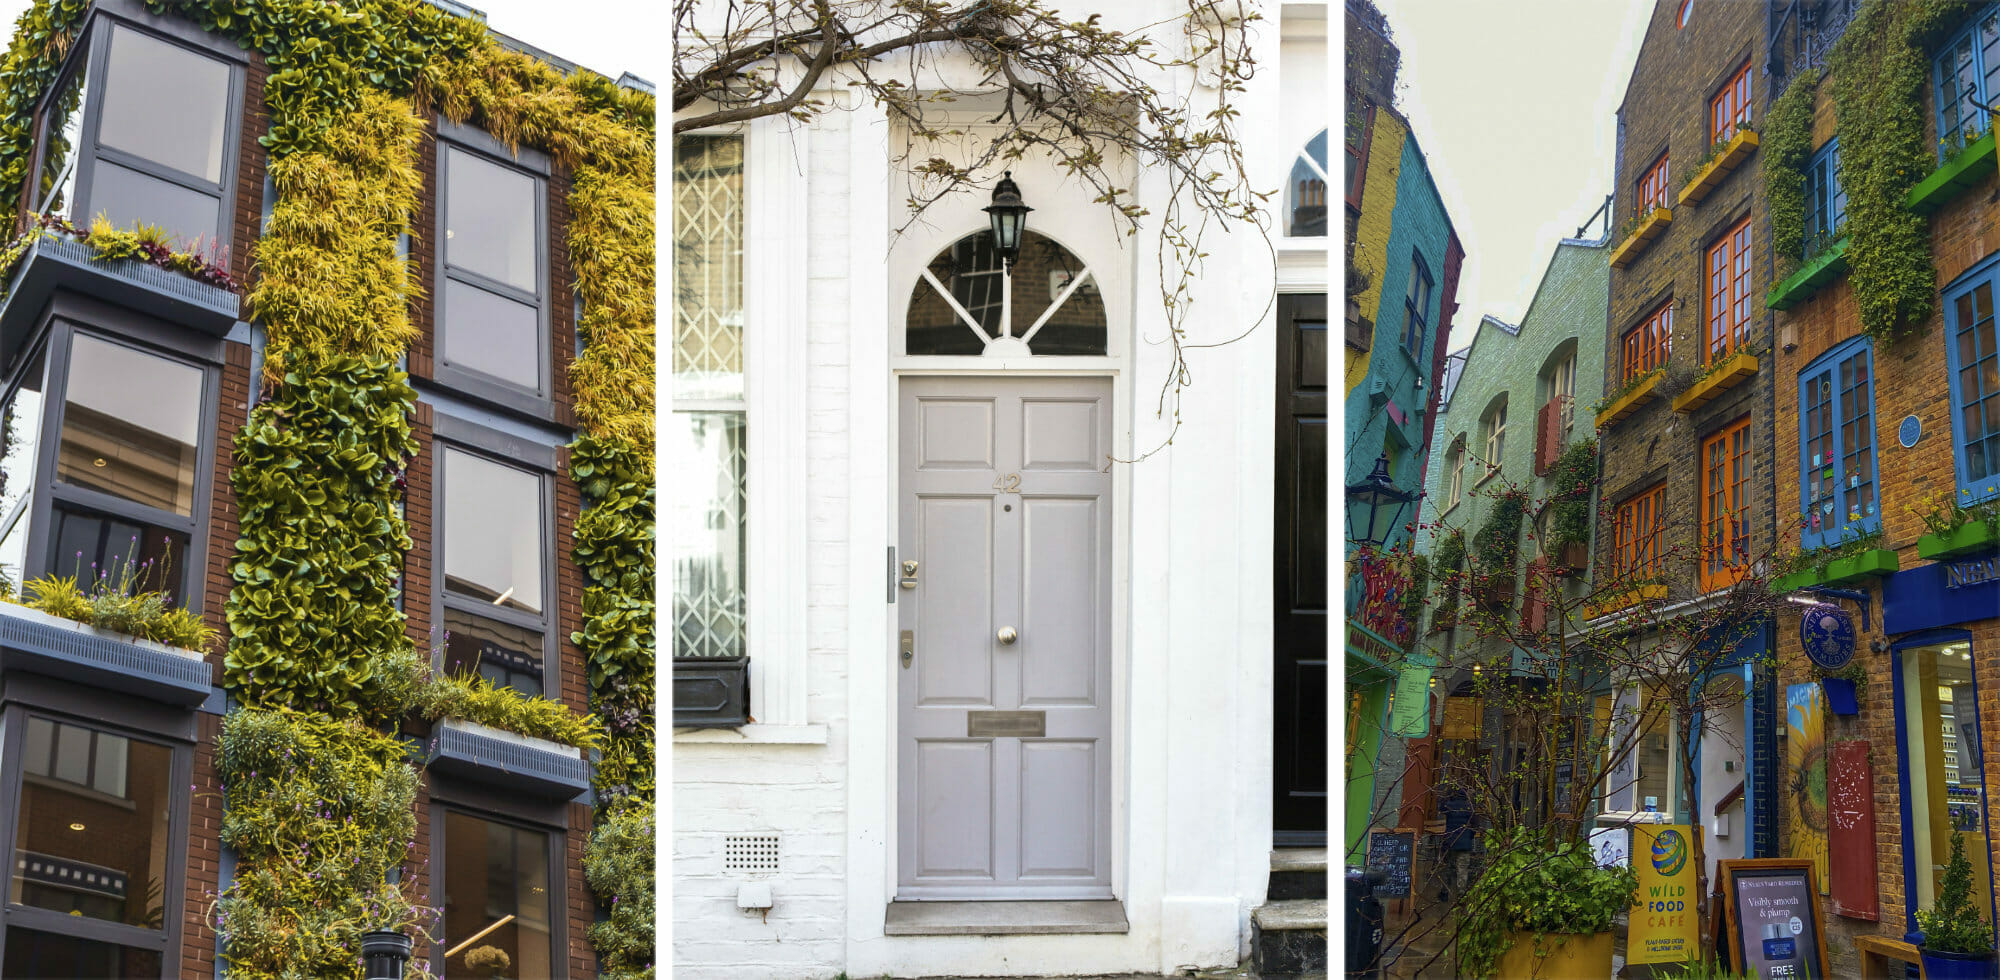 15+ Most Instagrammable Places in London + London Instagram Tips via @girlsgonelondon